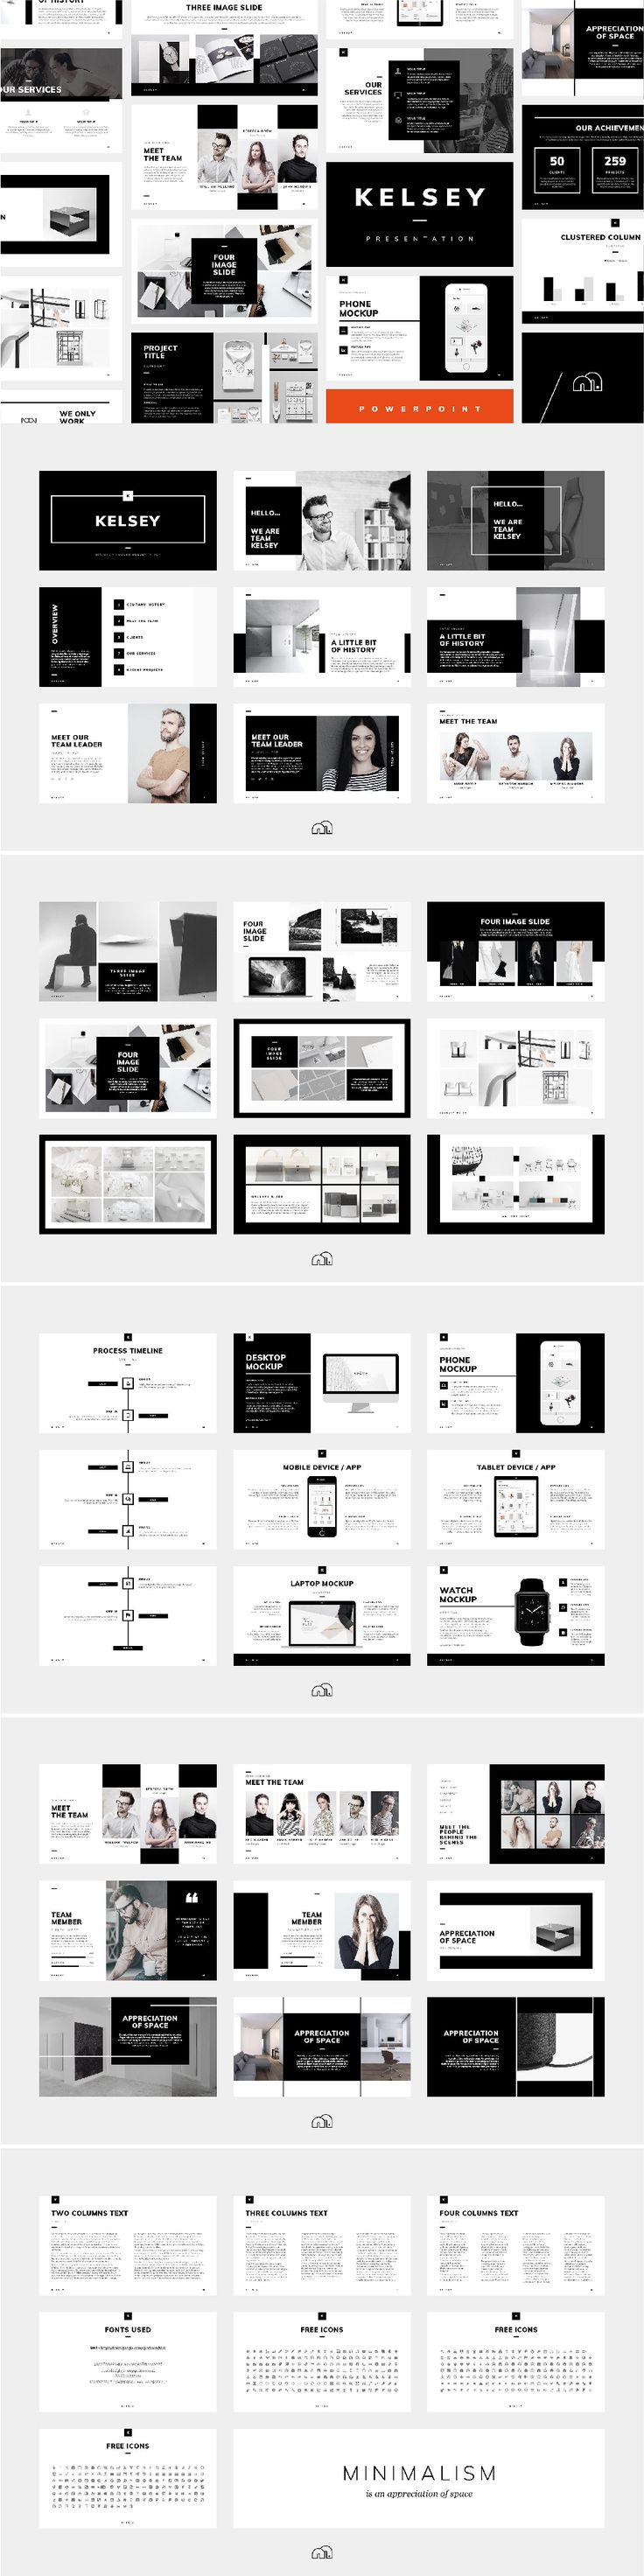 PowerPoint Template - Kelsey For those looking for a professional presentation, 'Kelsey' offers a beautifully minimal​ design packed with a wealth of features. Built with the creative industries in mind, but can be fully customised to suit any business or industry. #PowerPoint #template #keynote